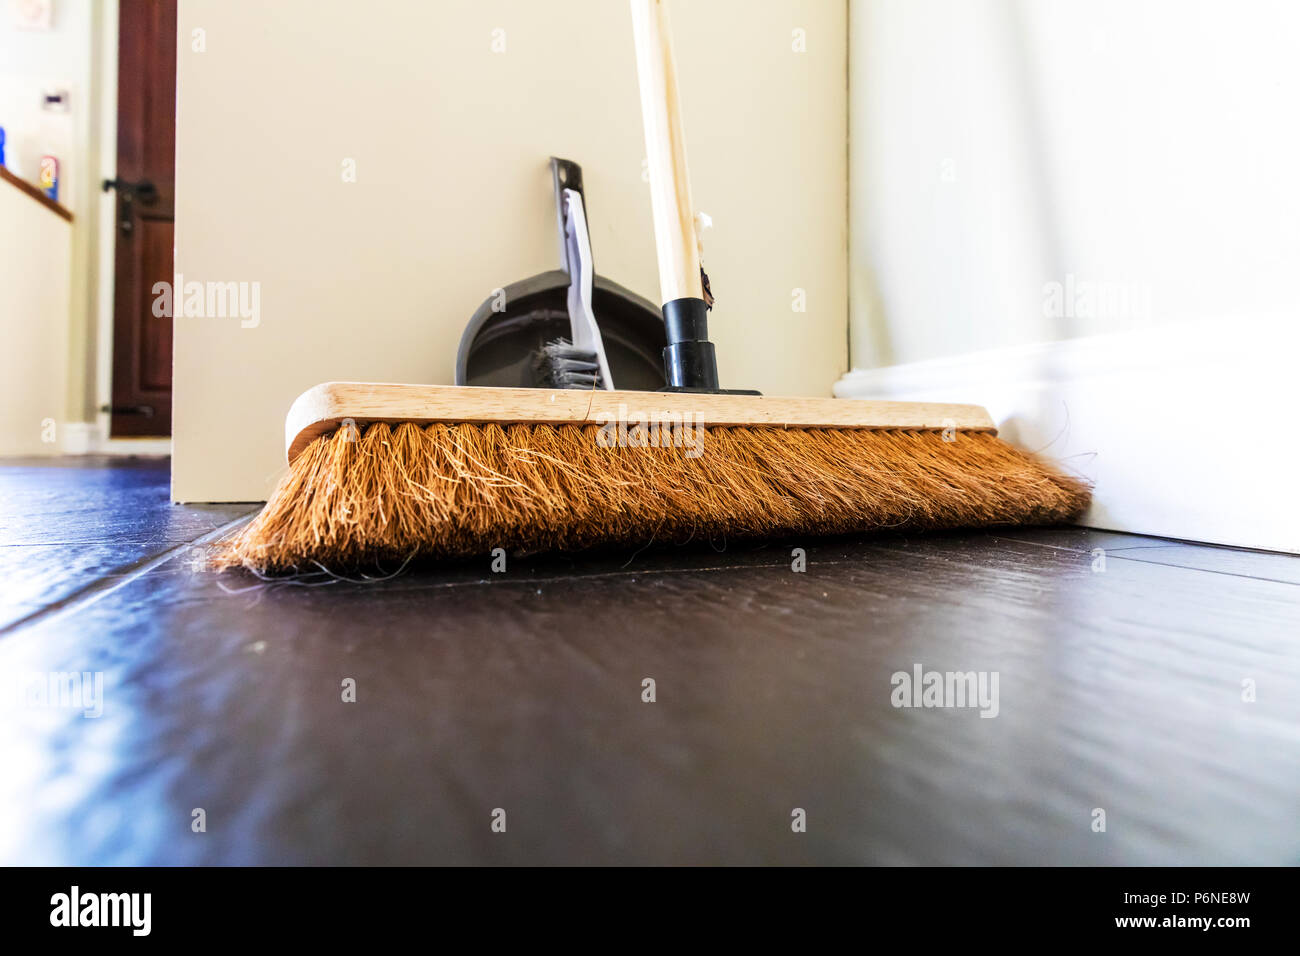 Broom, sweeping brush, brushes, brush, dustpan and brush, dustpan, brooms, floor sweep, broom head, clean, cleaner, floor, cleans, Stock Photo